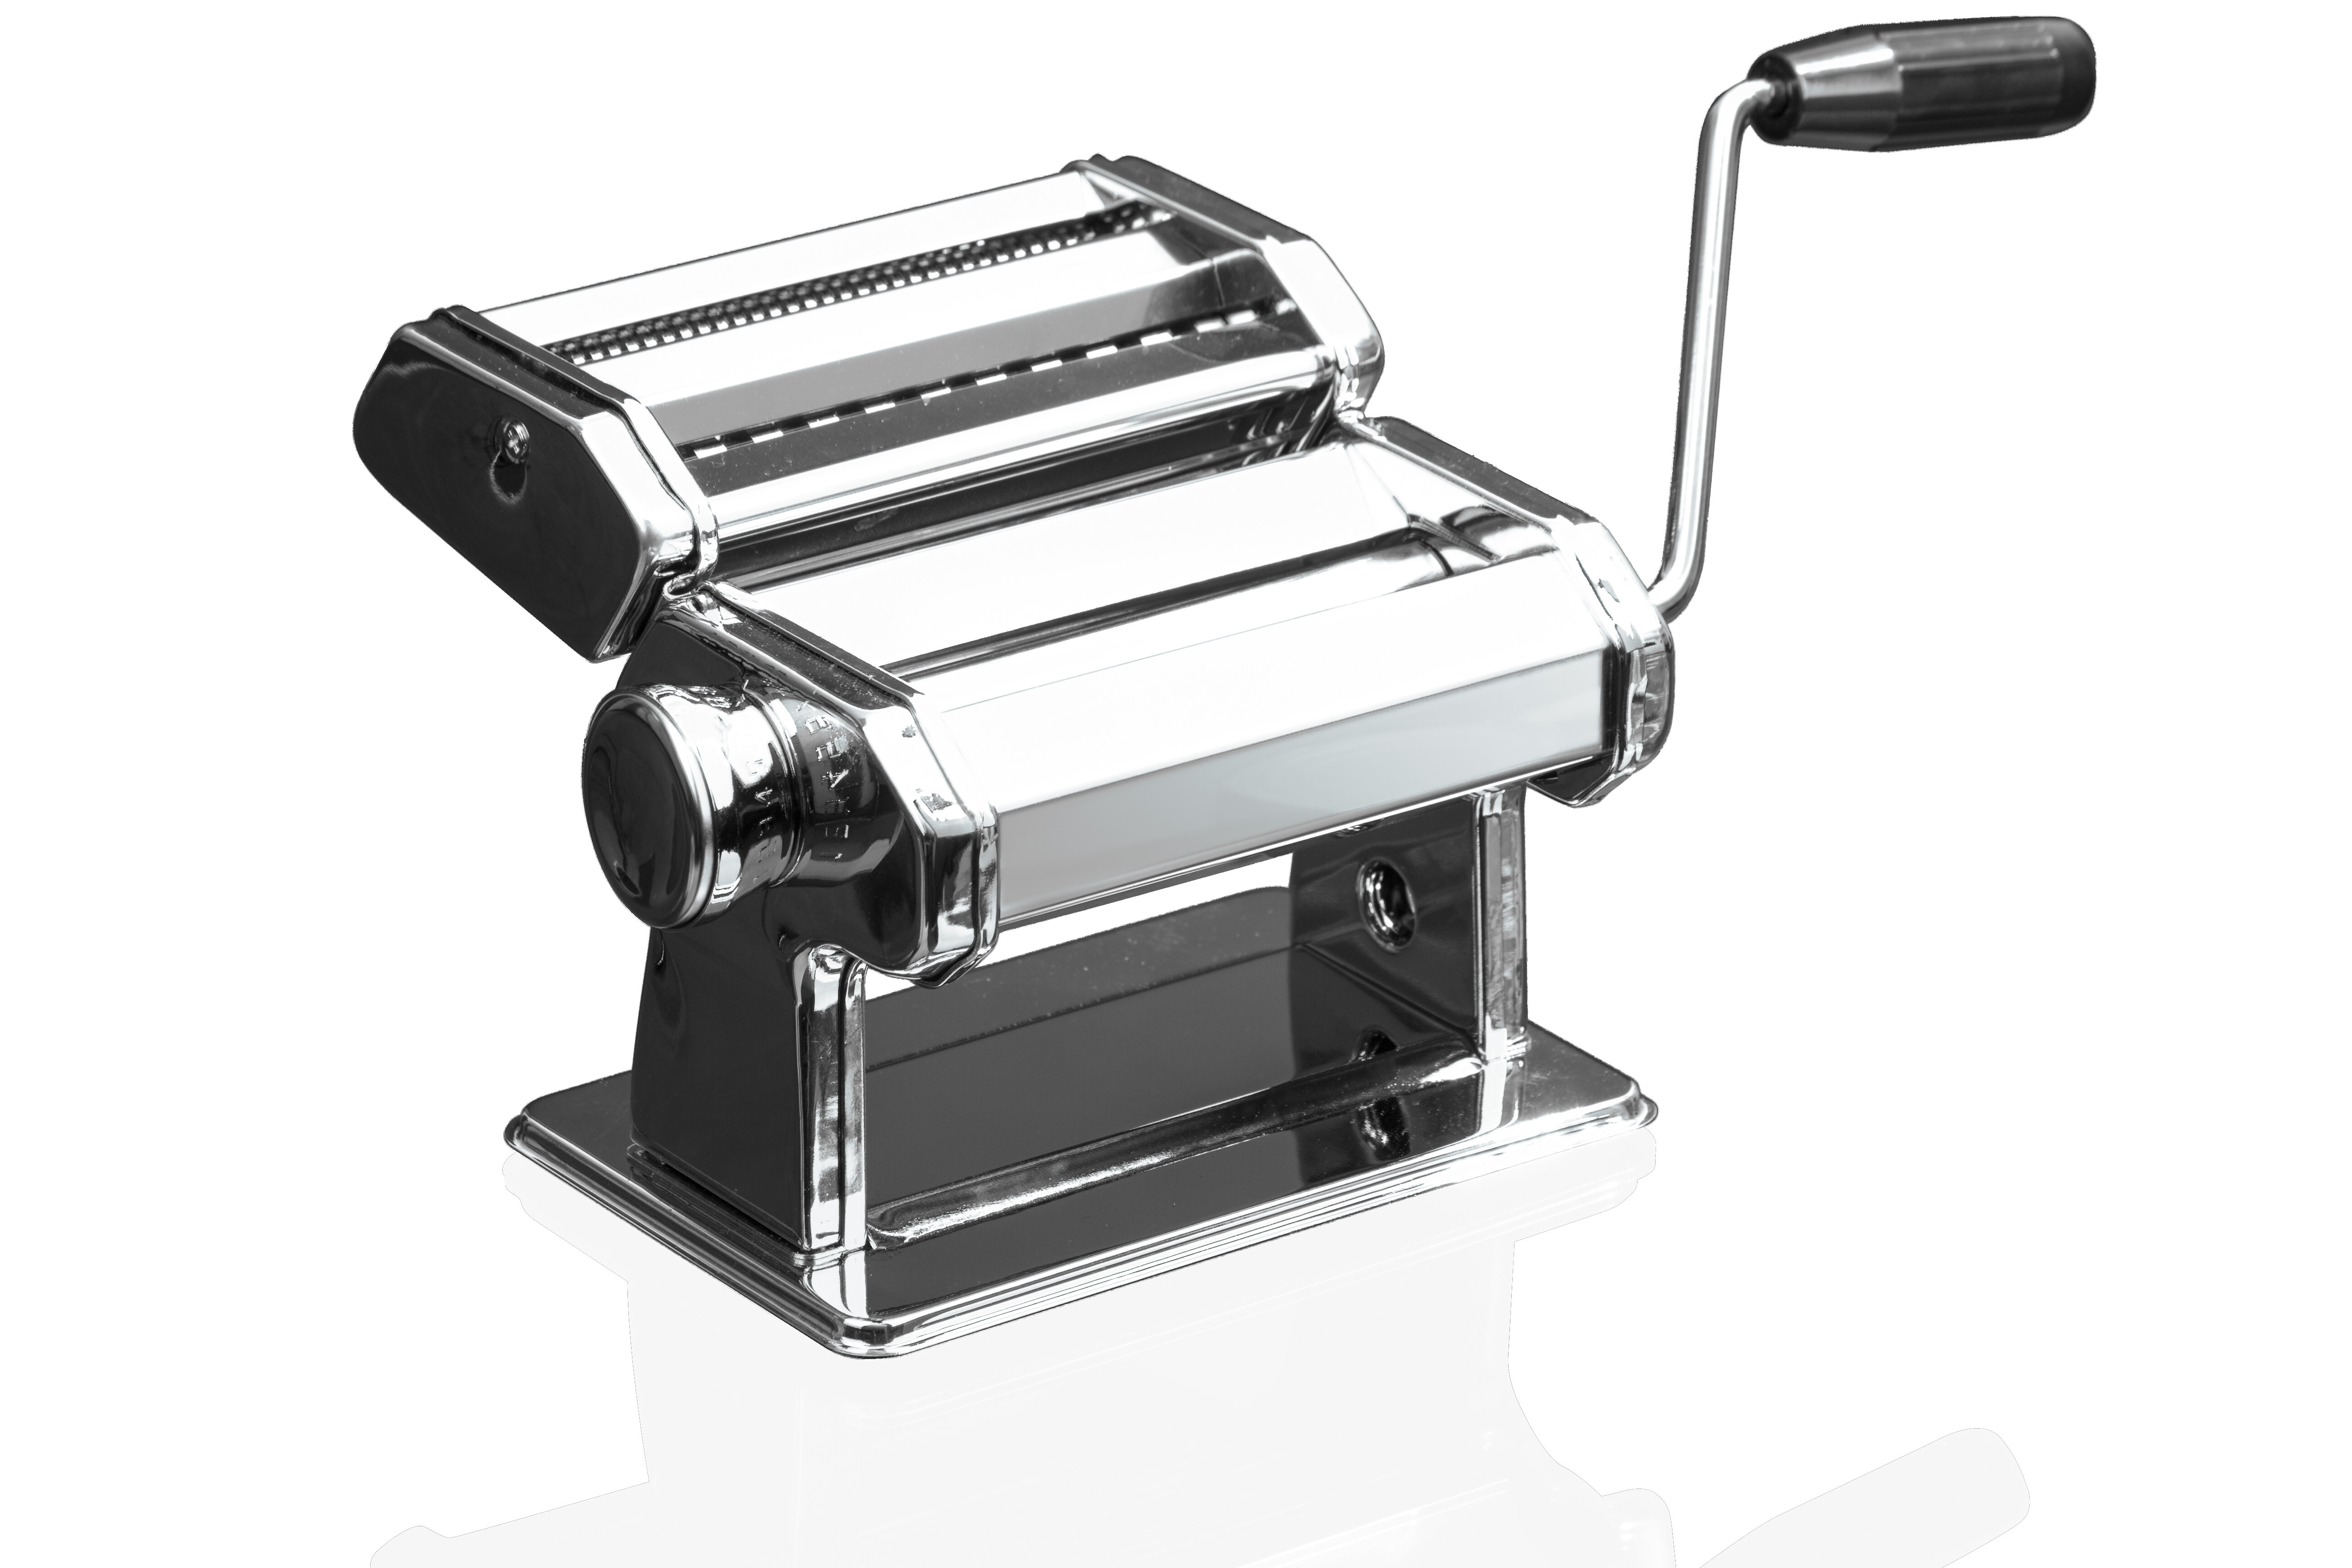 Imperial Home Manual Pasta Maker With 1 Attachment Reviews Wayfair